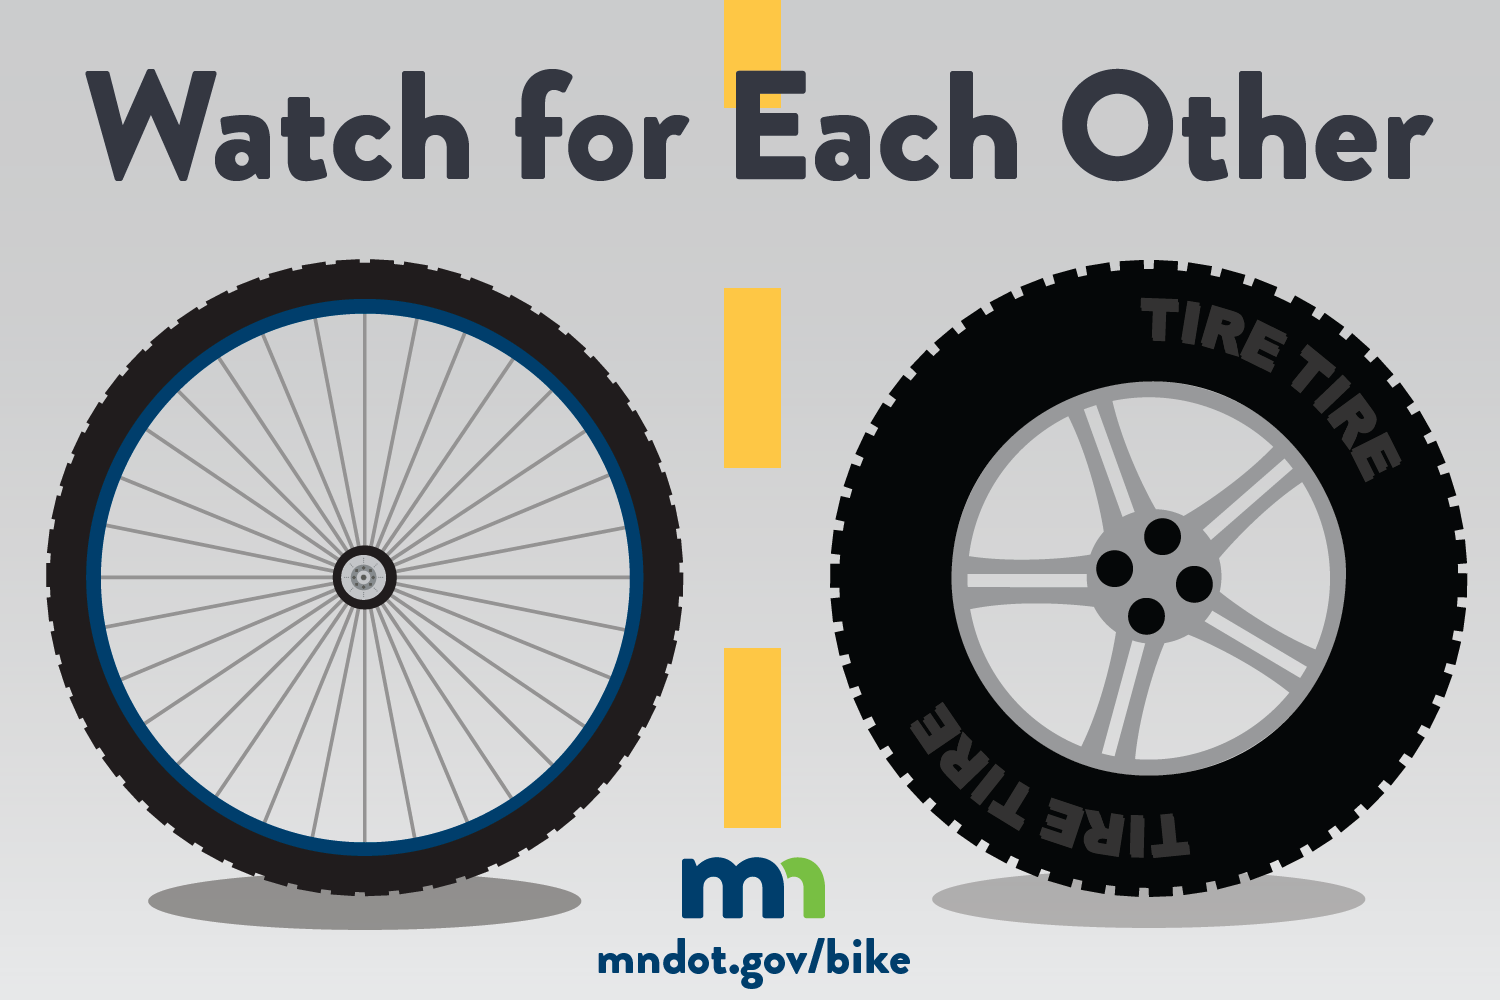 Watch for each other: People who bike and people who drive should watch out for each other.